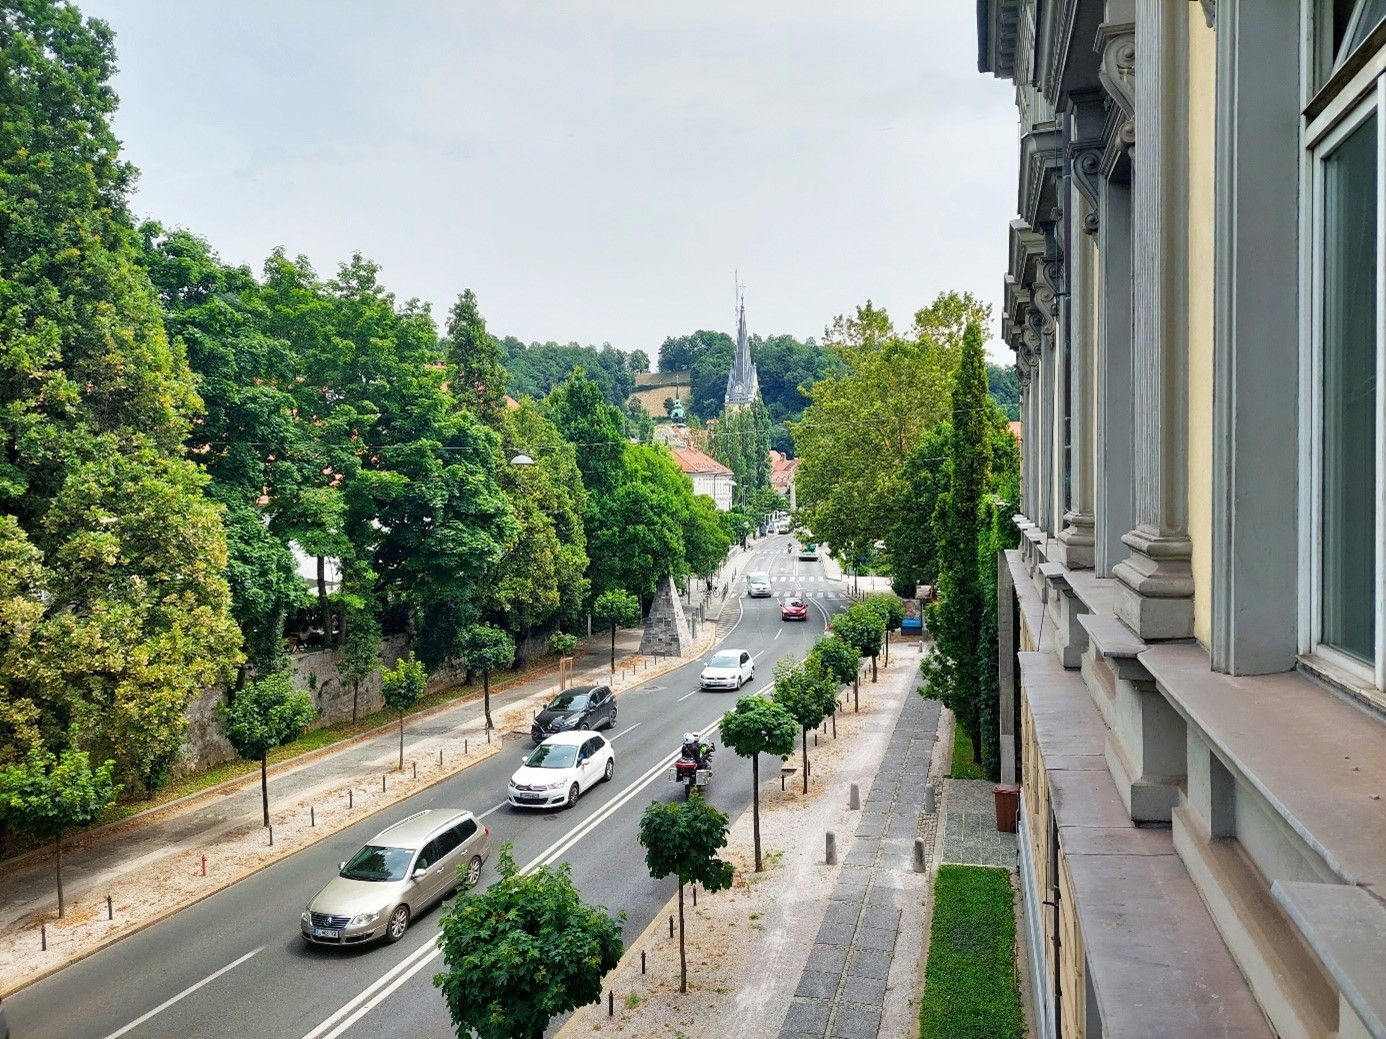 Picture 2: During the covid19 crisis, traffic on Zoisova Street decreased significantly, while in the pre-crisis period the number of vehicles reached almost 20,000 per day.